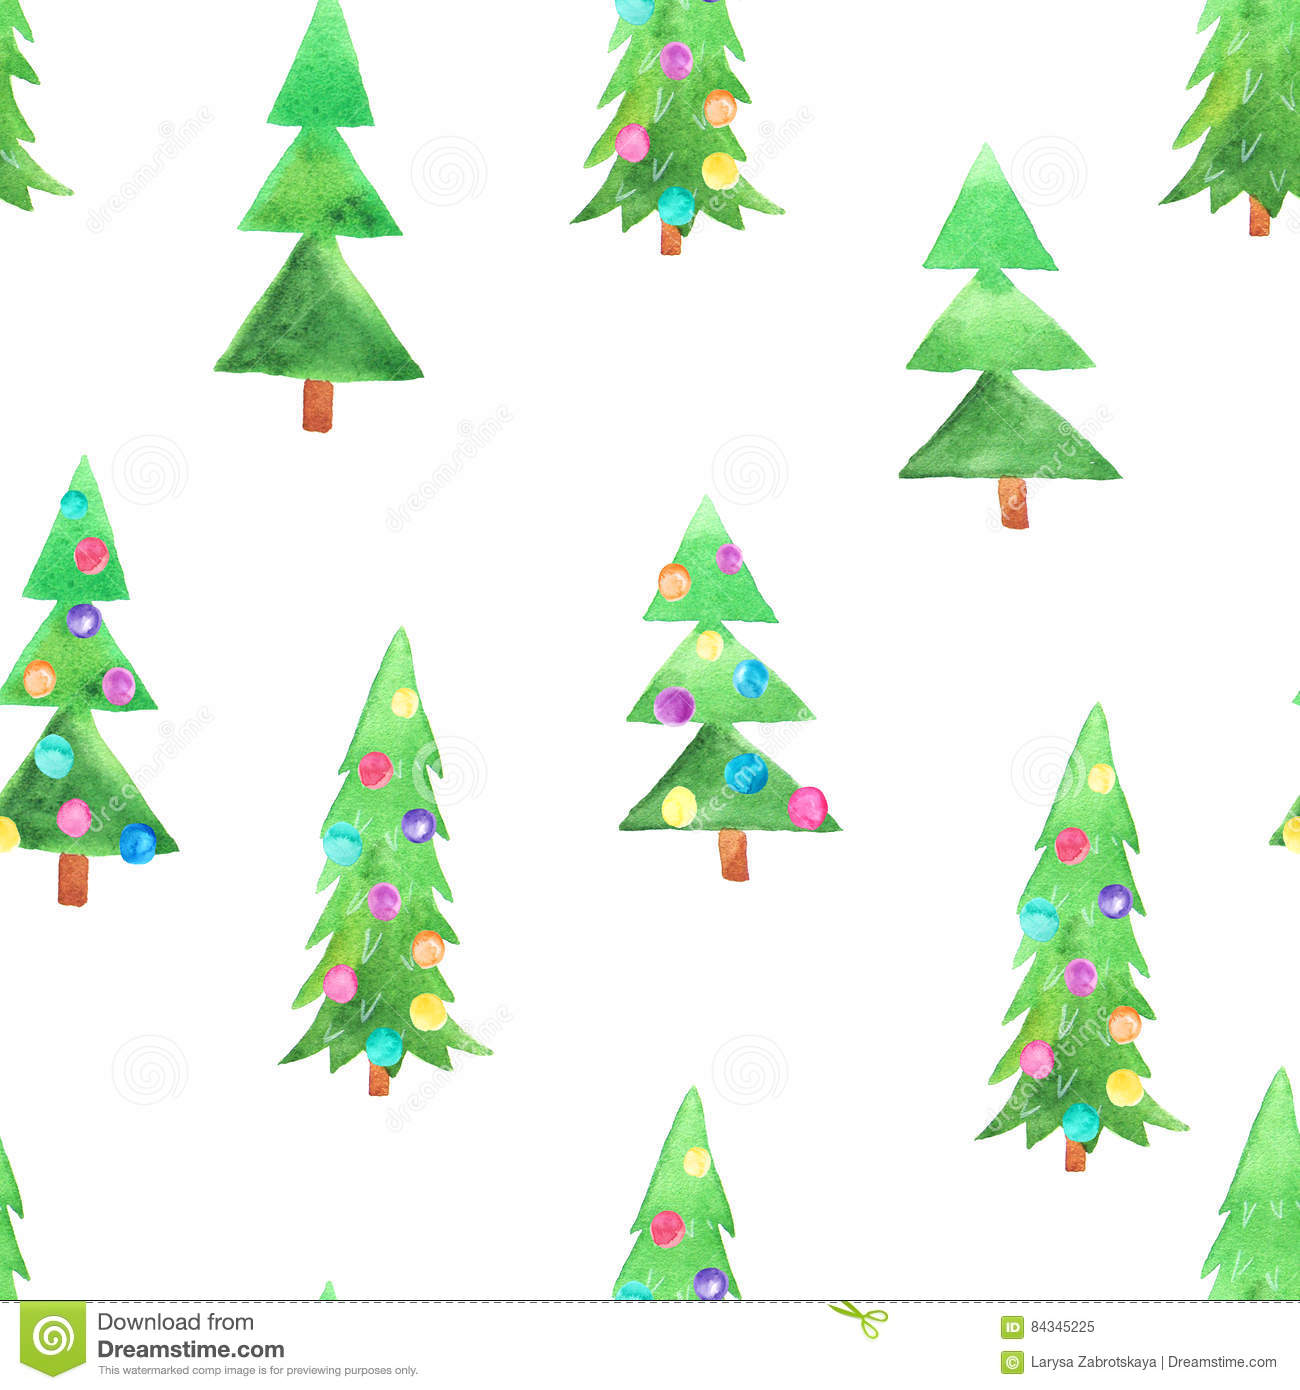 Watercolour Christmas Tree: Watercolor Christmas Tree Seamless Pattern Stock